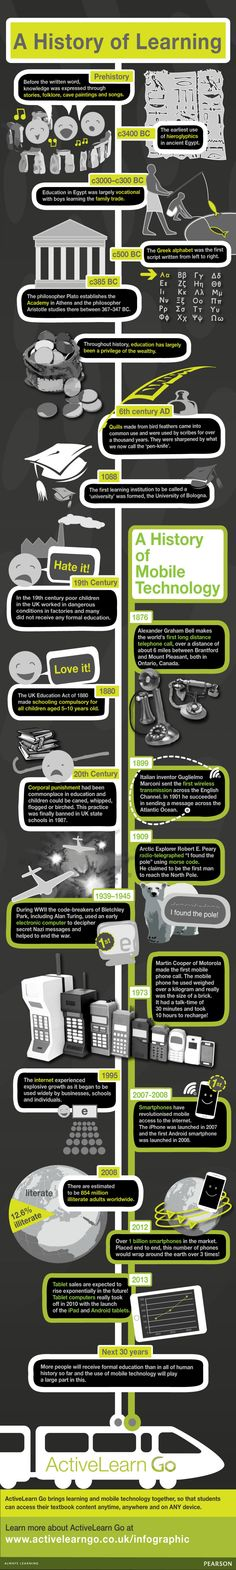 A History of Learning - A History of Mobile Technology Infographic.